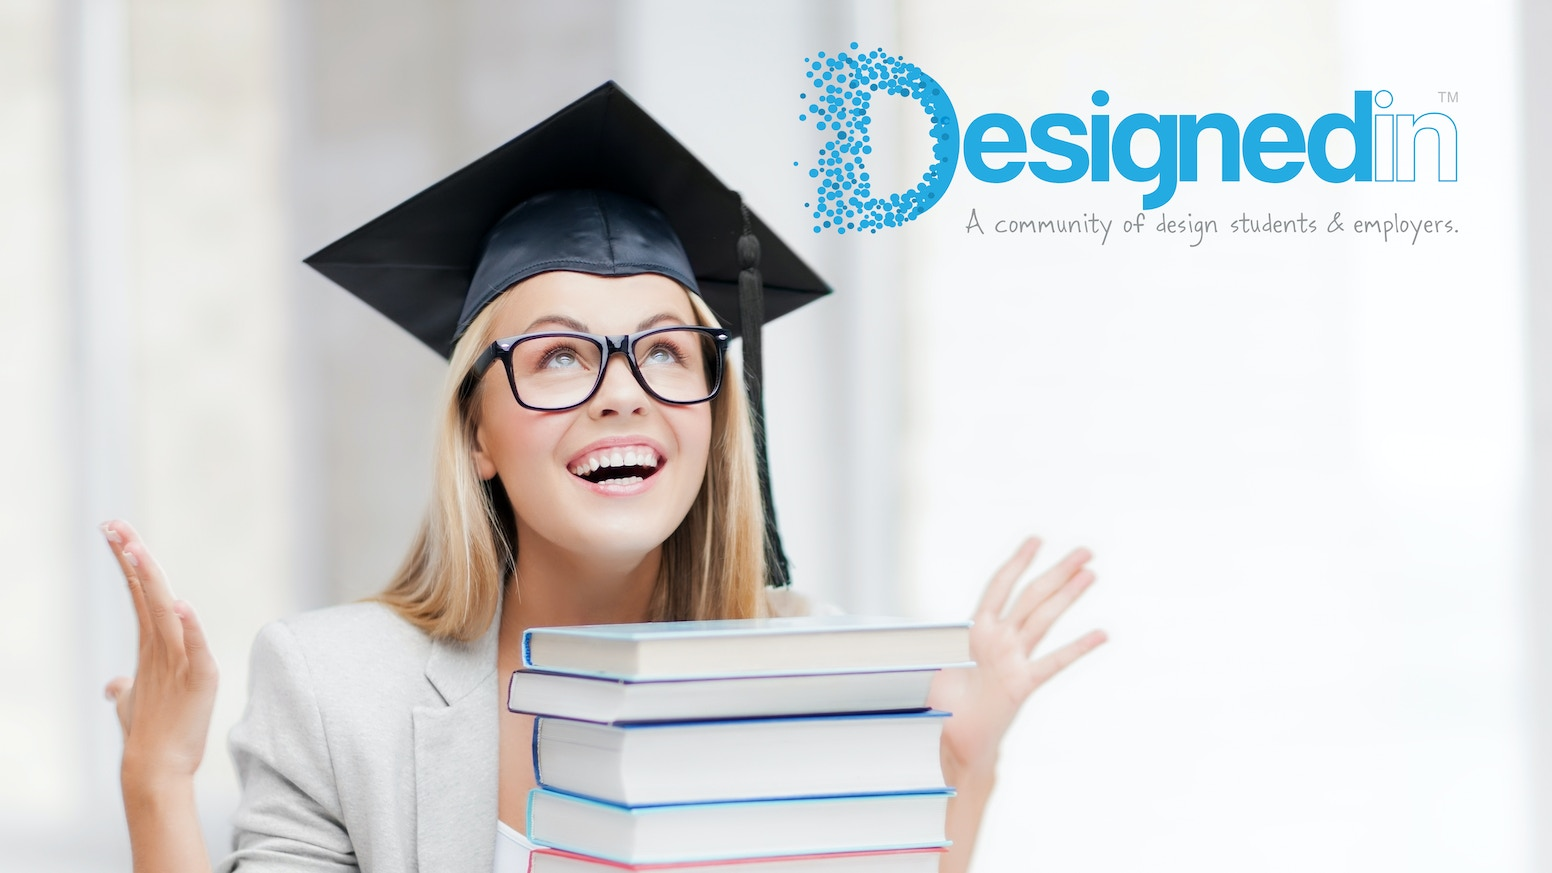 A marketplace for design students to expand their portfolios and improve their skills by working on real-world projects. On the flip side, this is a great opportunity for companies to complete design projects through those students for an affordable cost.